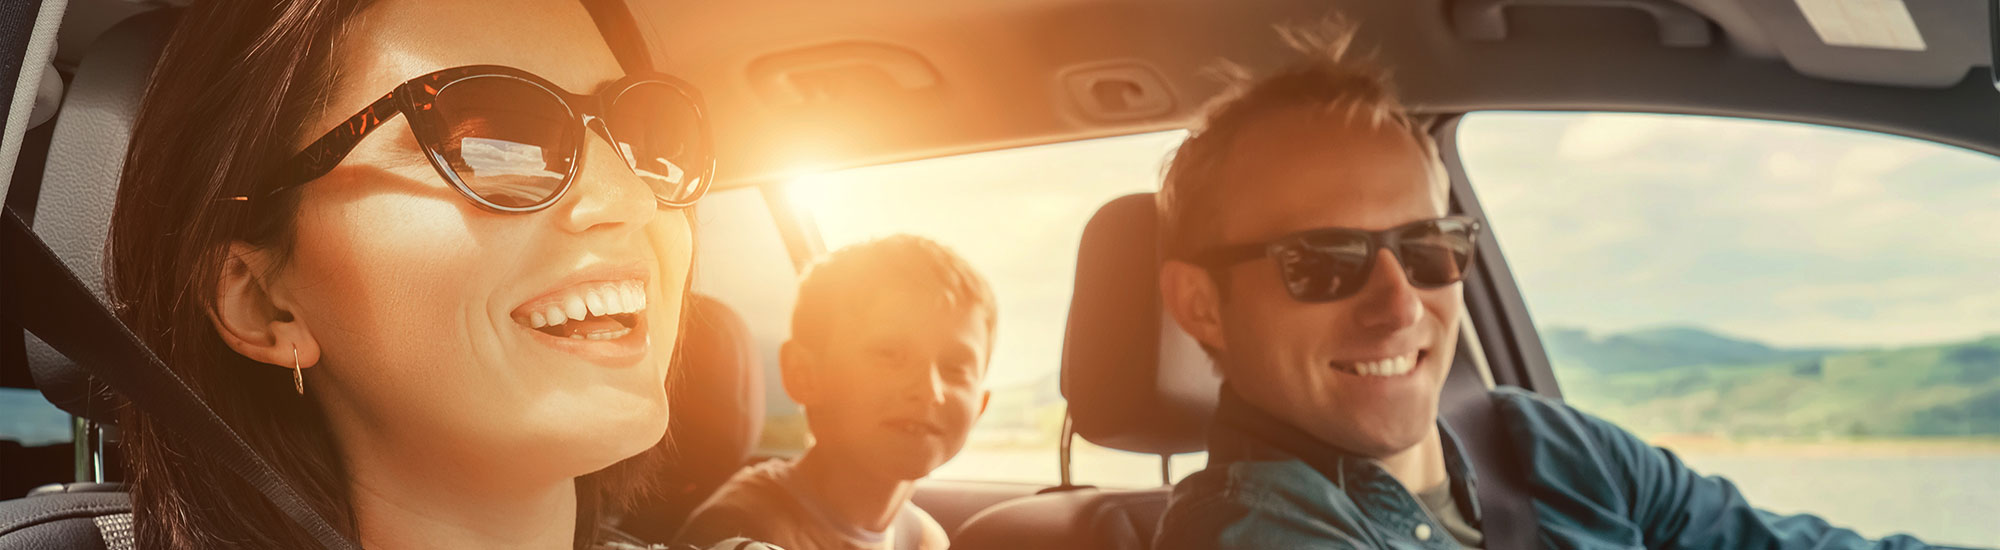 smiling family riding in car